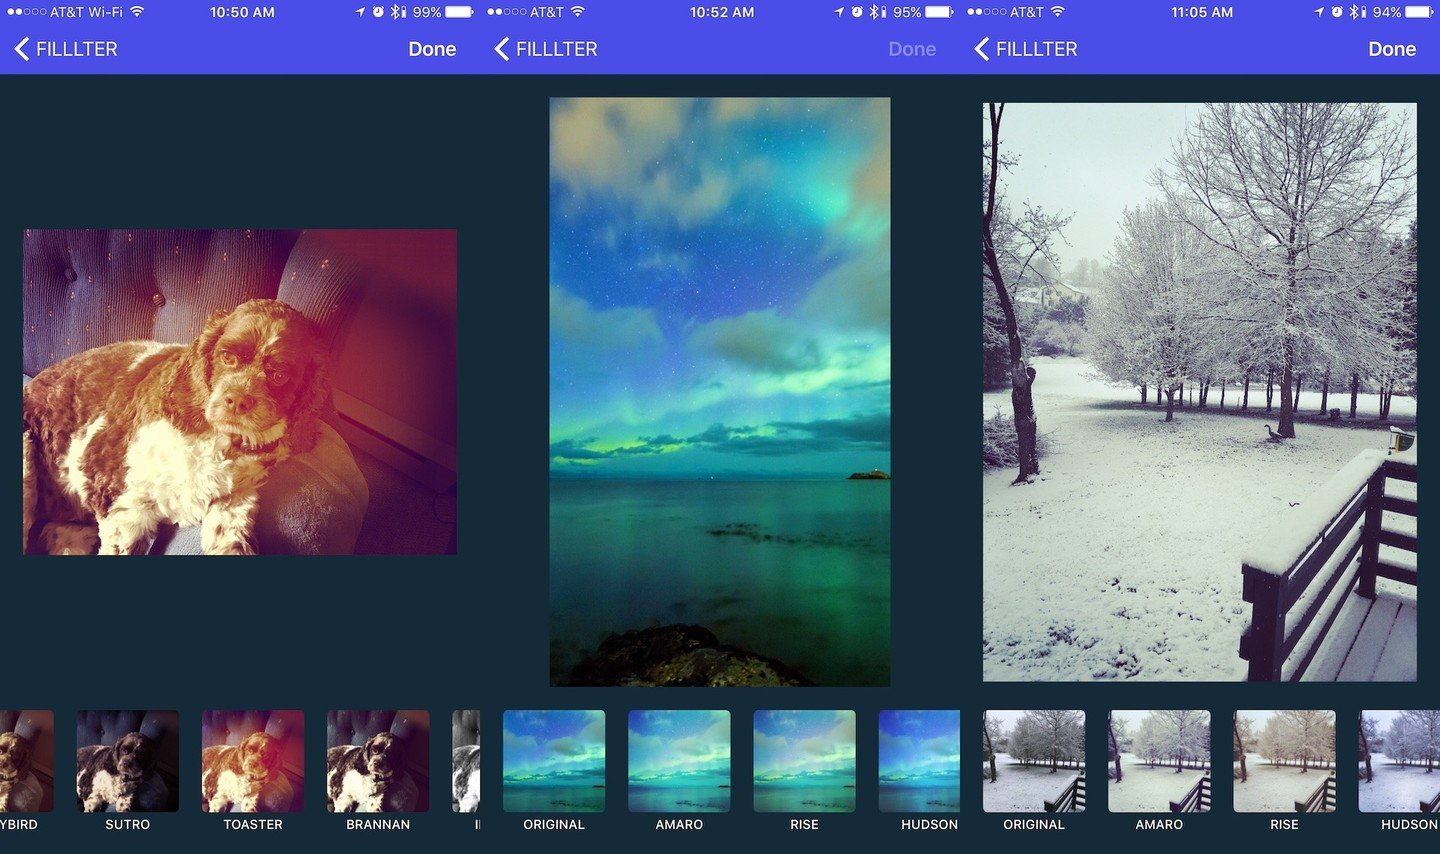 Filllter - Filters & Effect for Live Photos